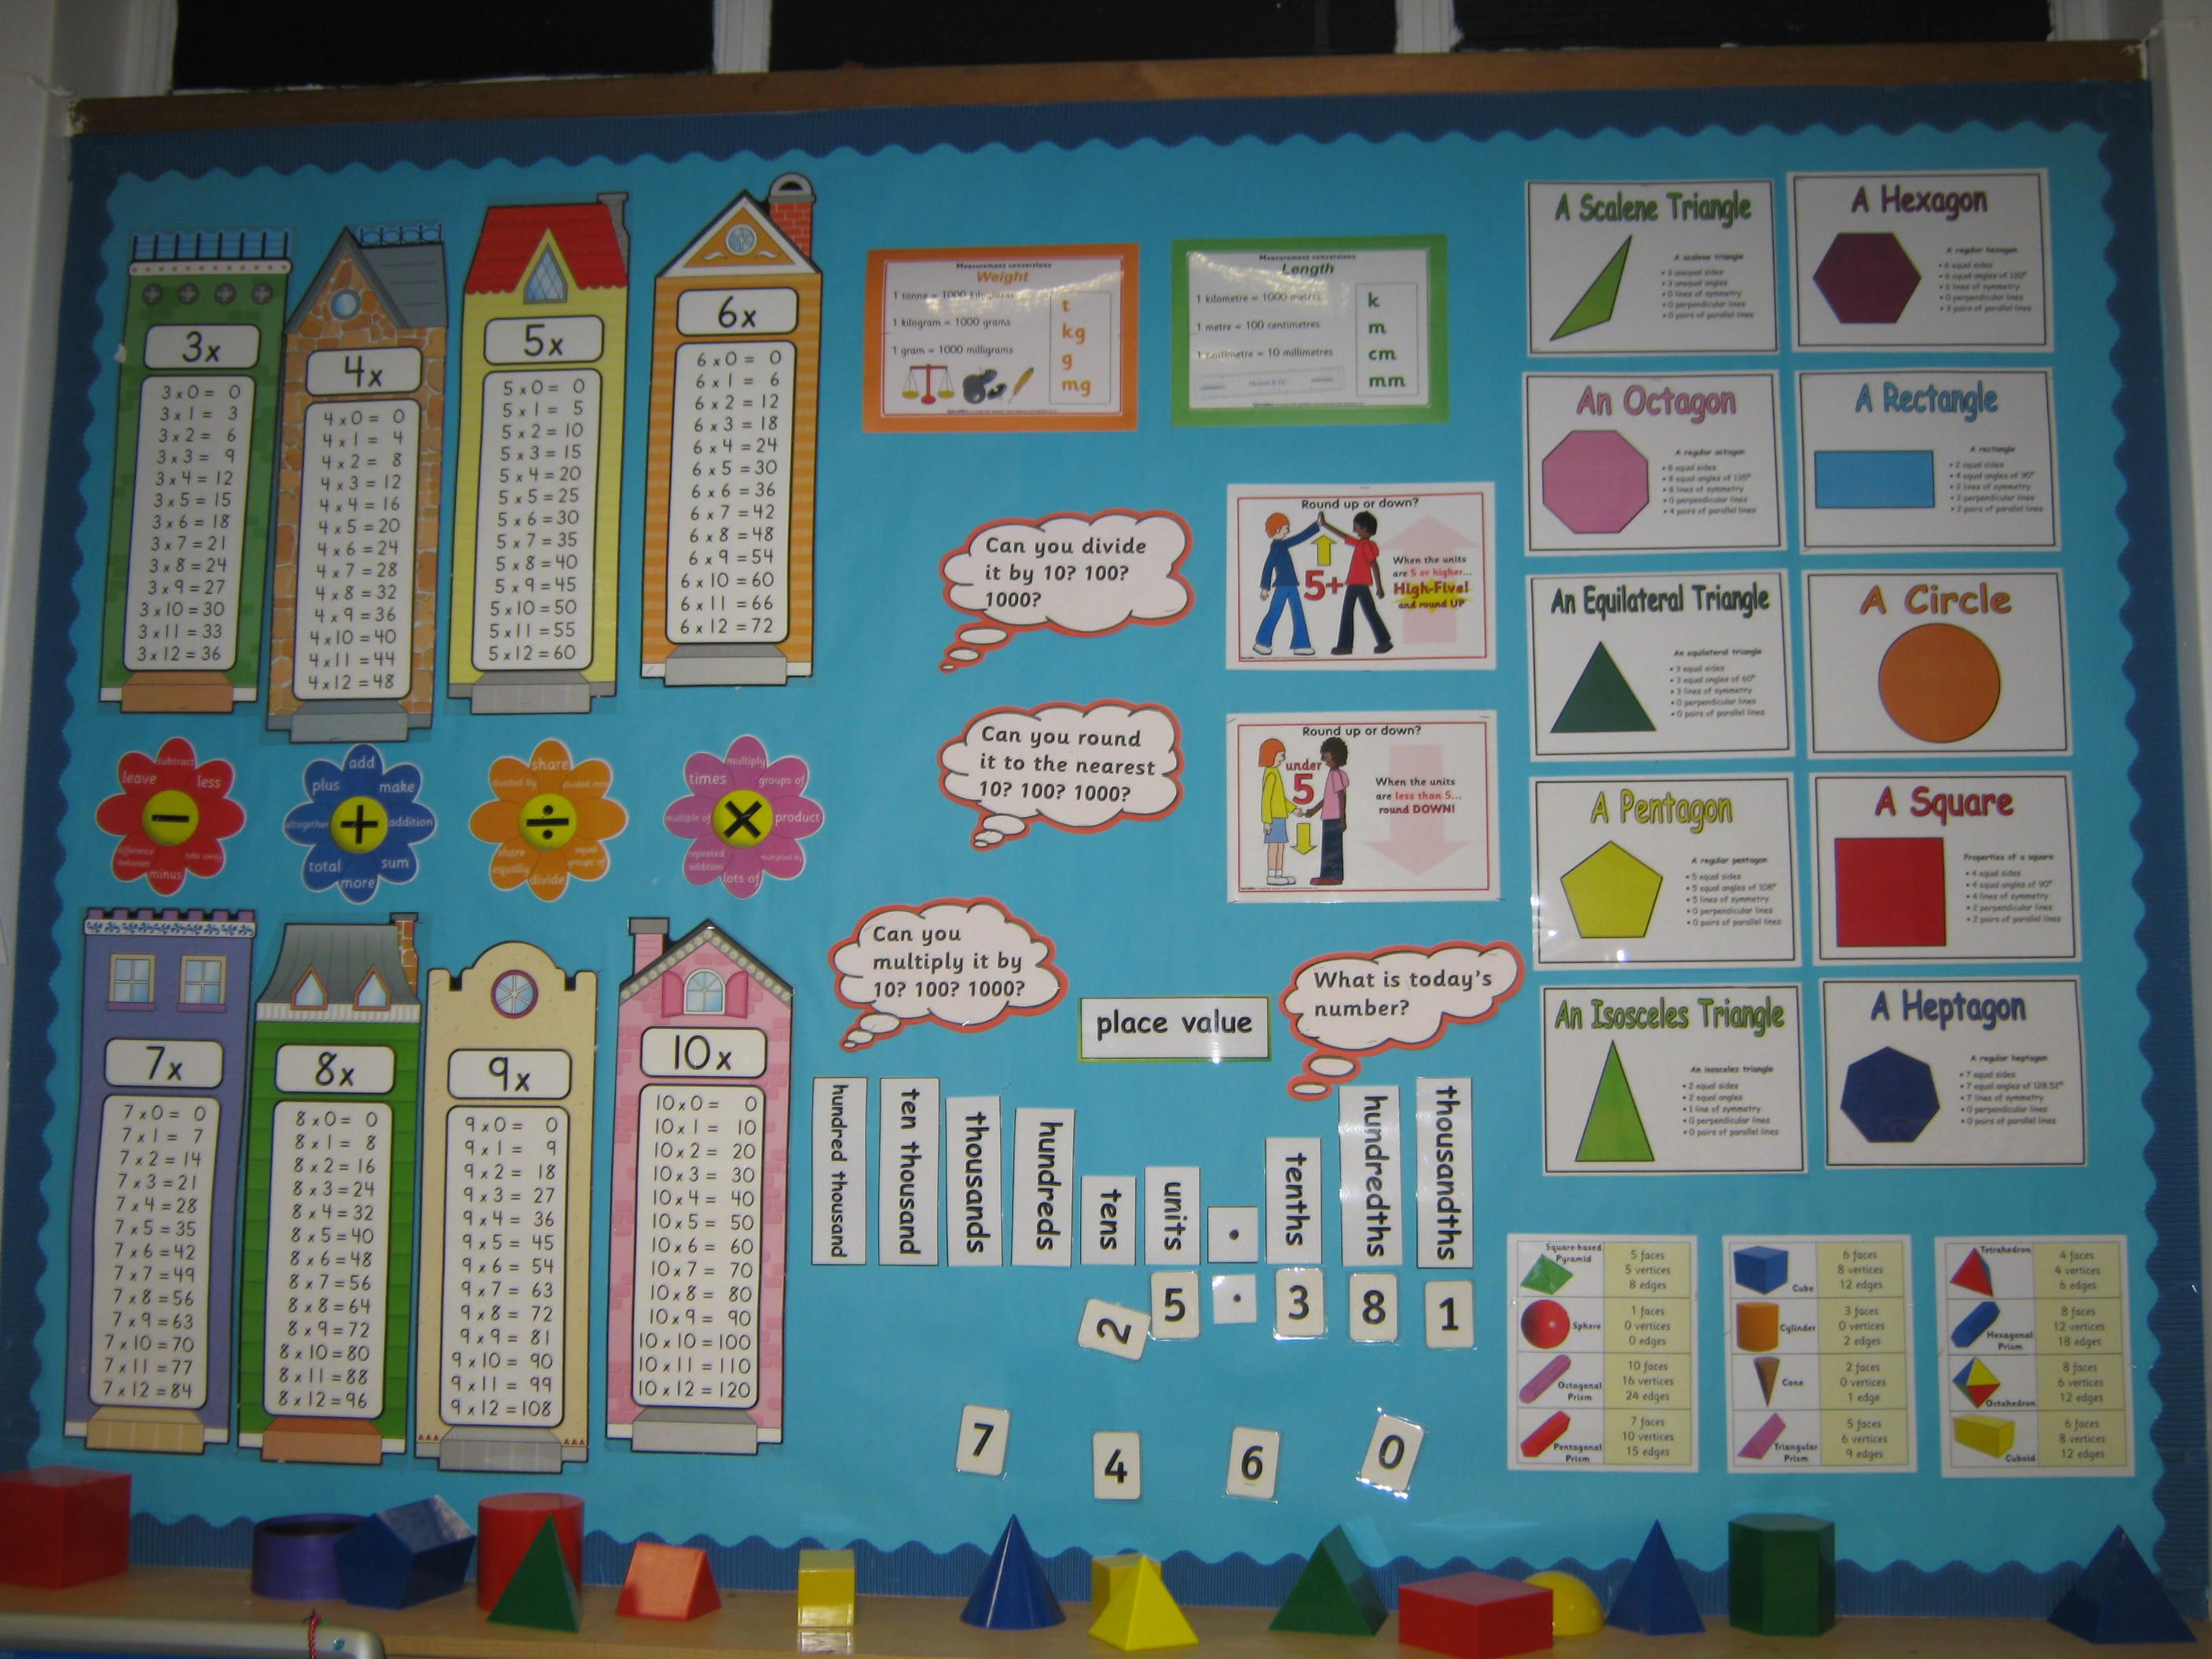 Mathématiques A4 Fractions Educational Poster Home Learning classroom display